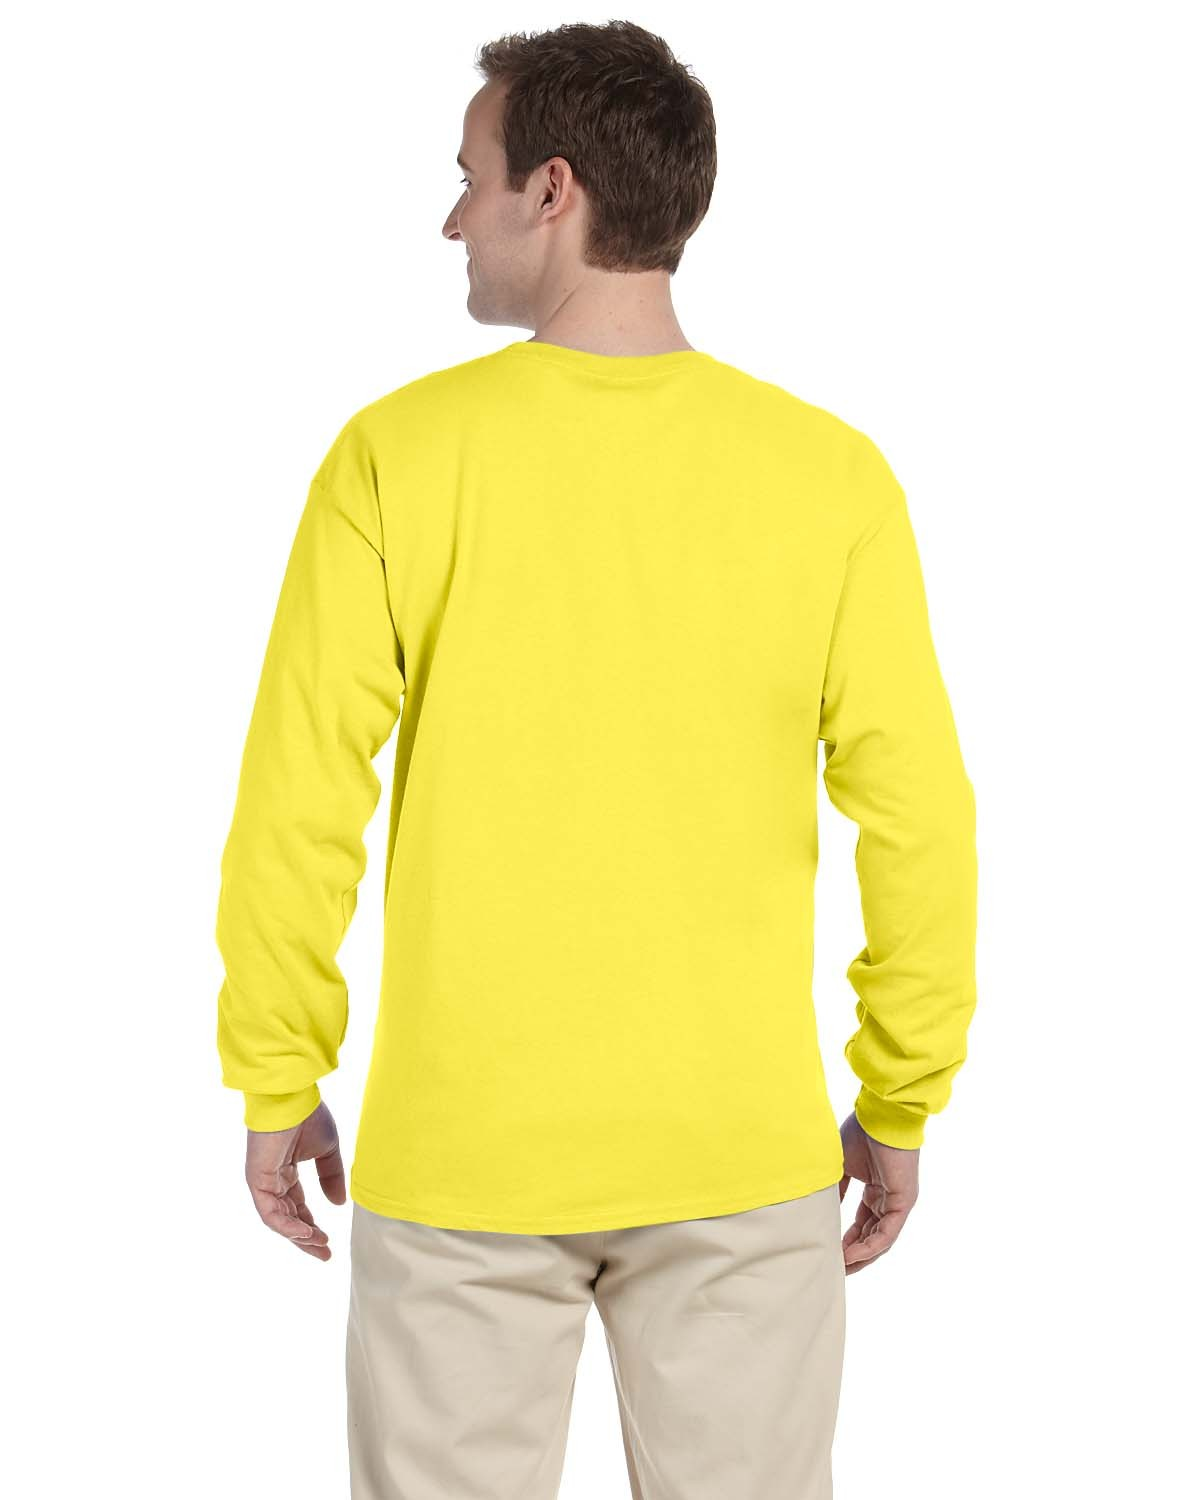 4930 Fruit of the Loom YELLOW